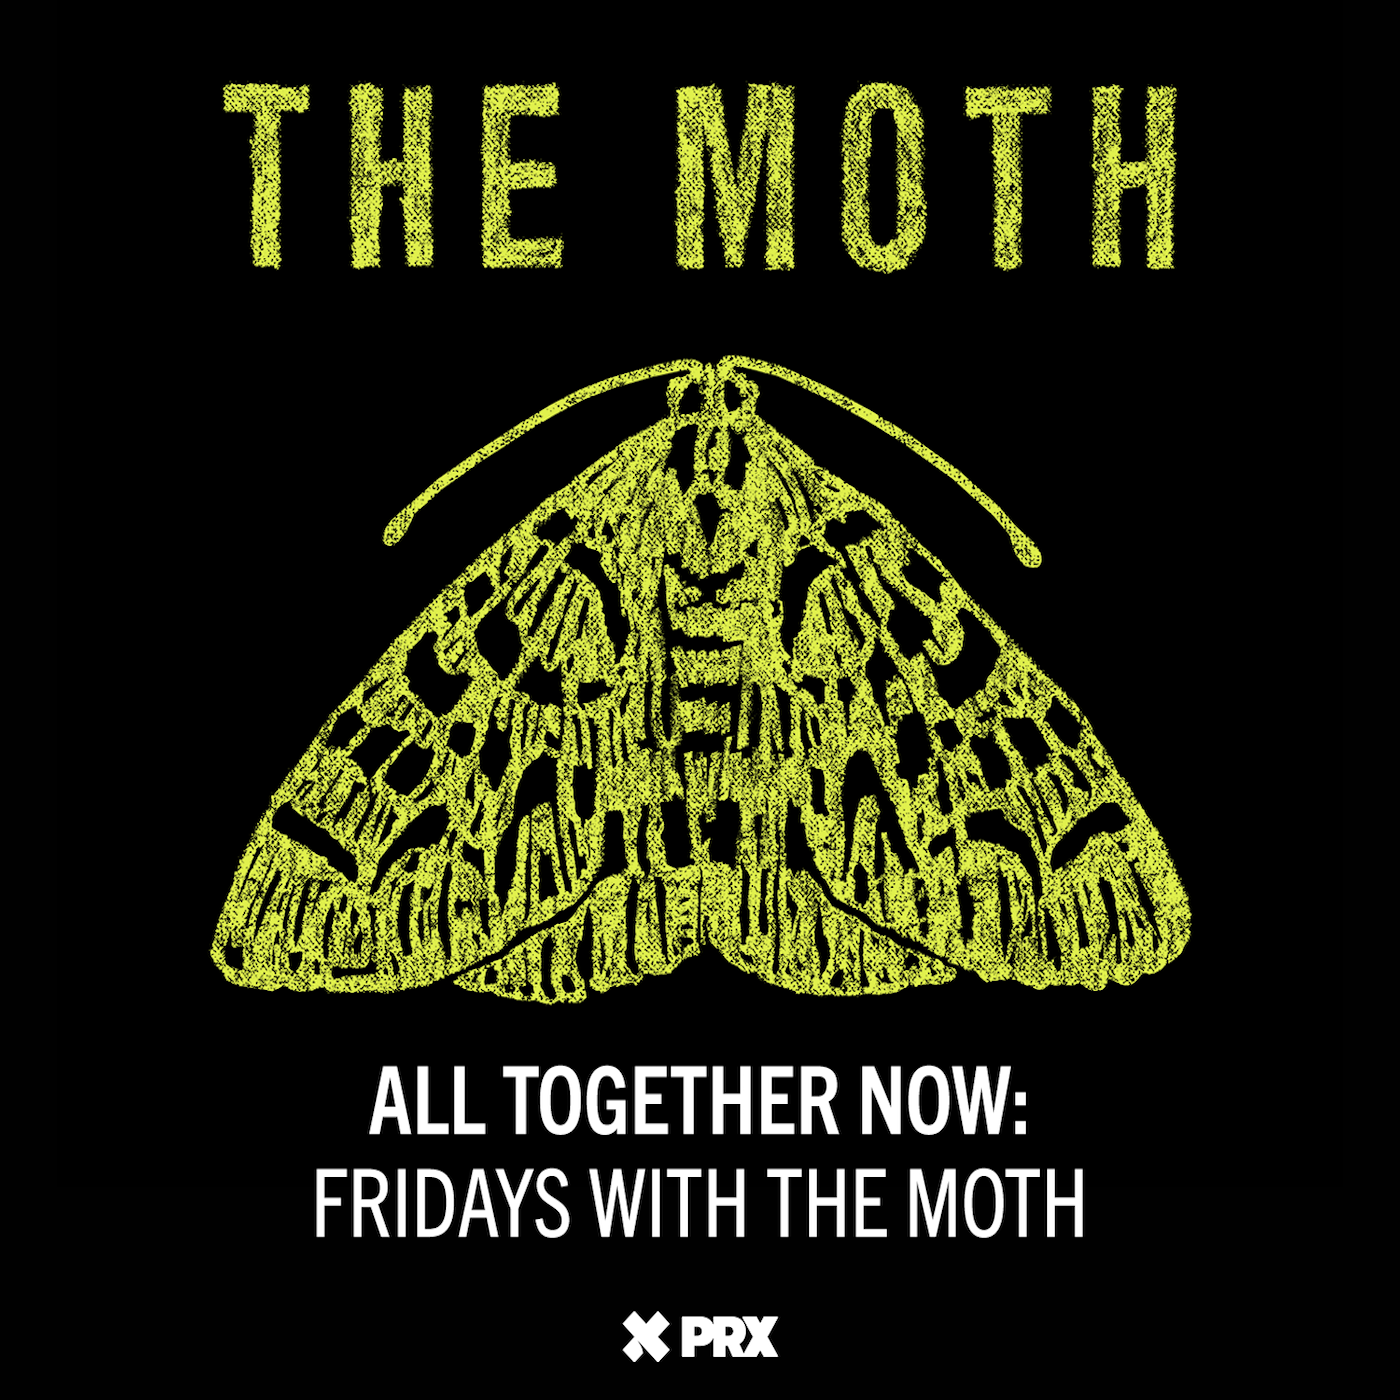 All Together Now: Fridays with The Moth - Boots Riley